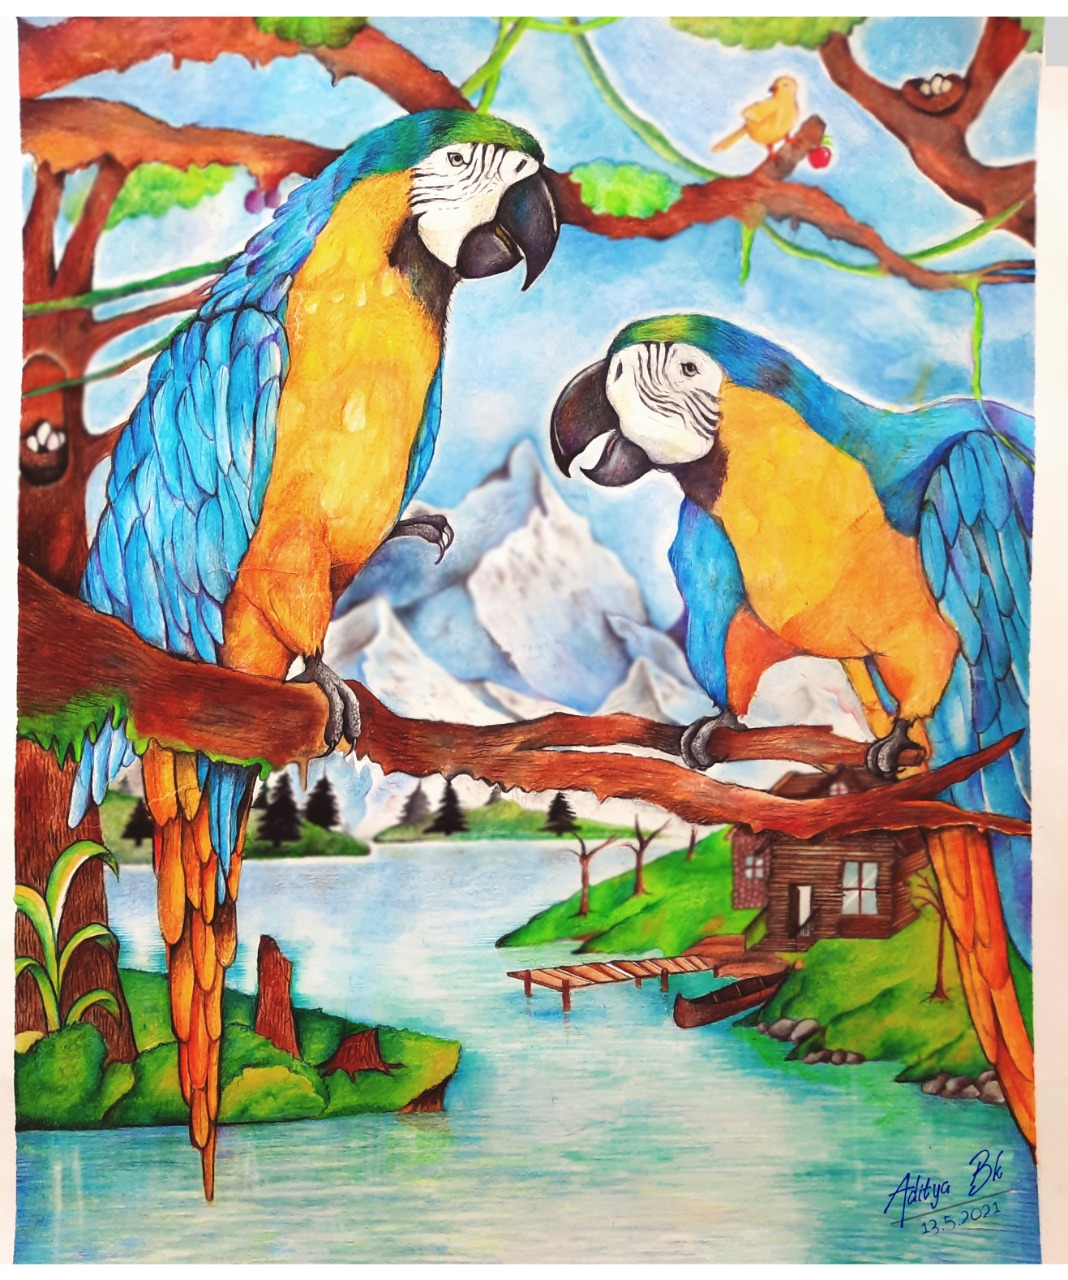 Painting in a parrot